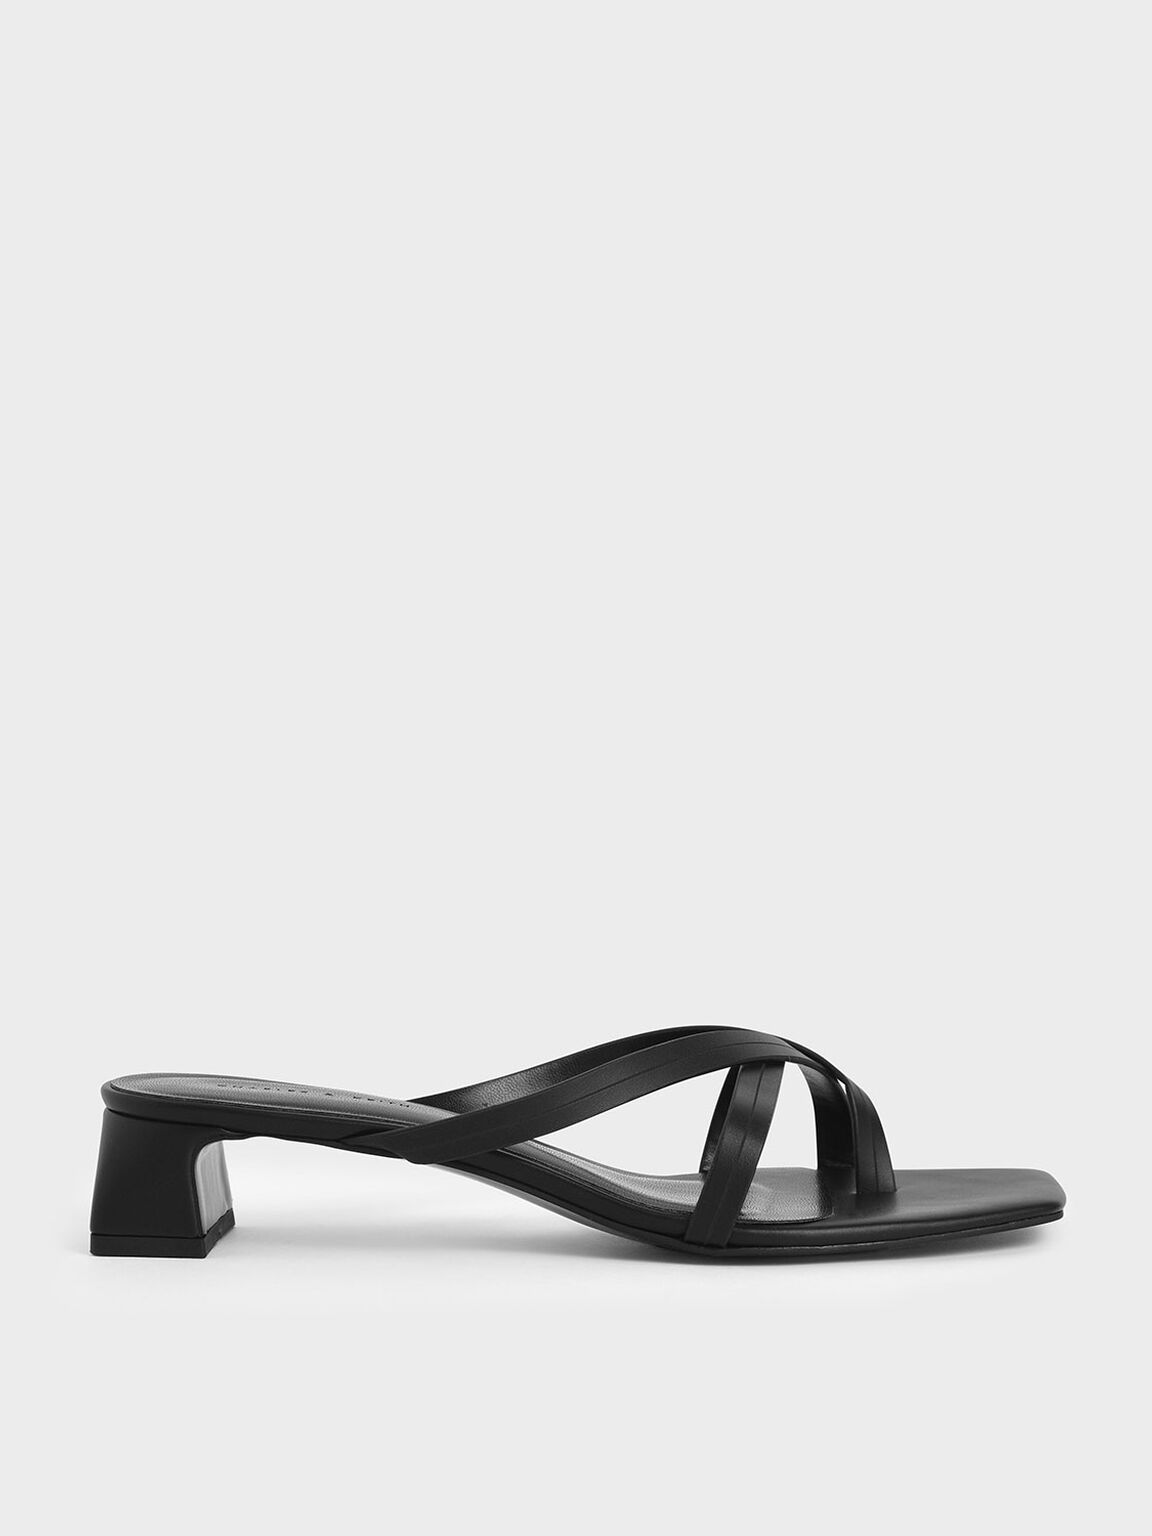 Strappy Toe Loop Heeled Sandals, Black, hi-res